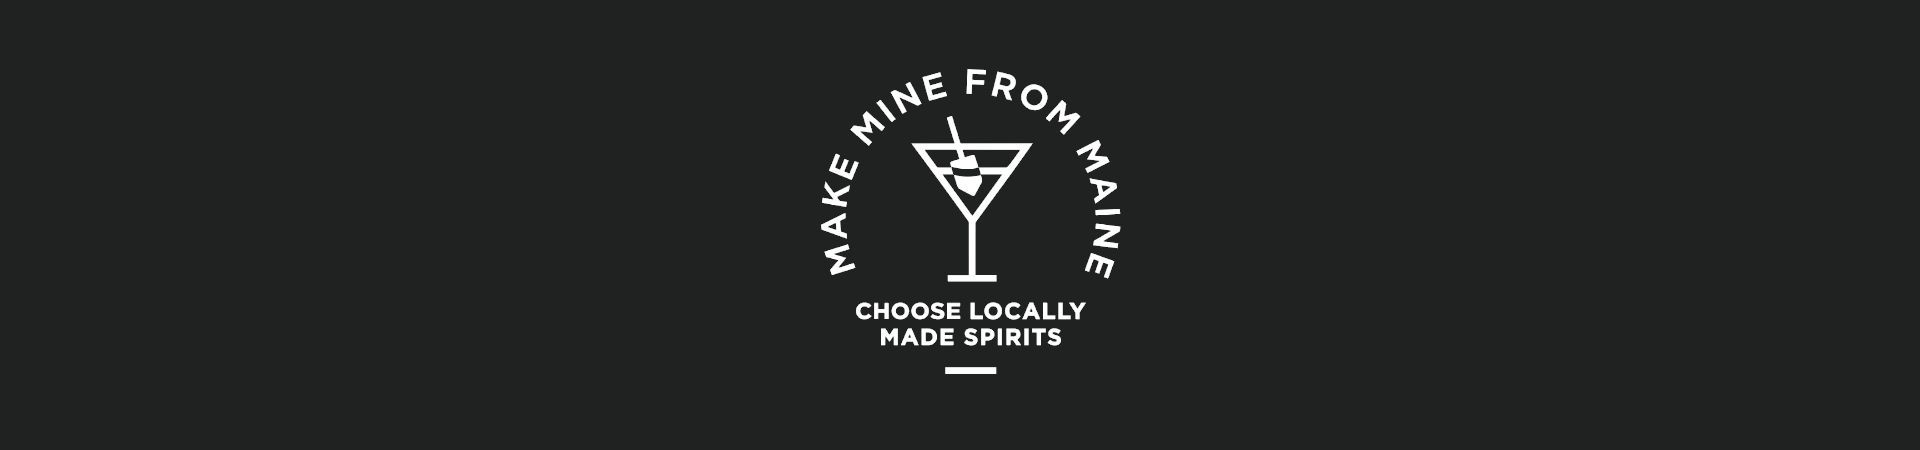 Make mine from Maine - Choose locally made spirits